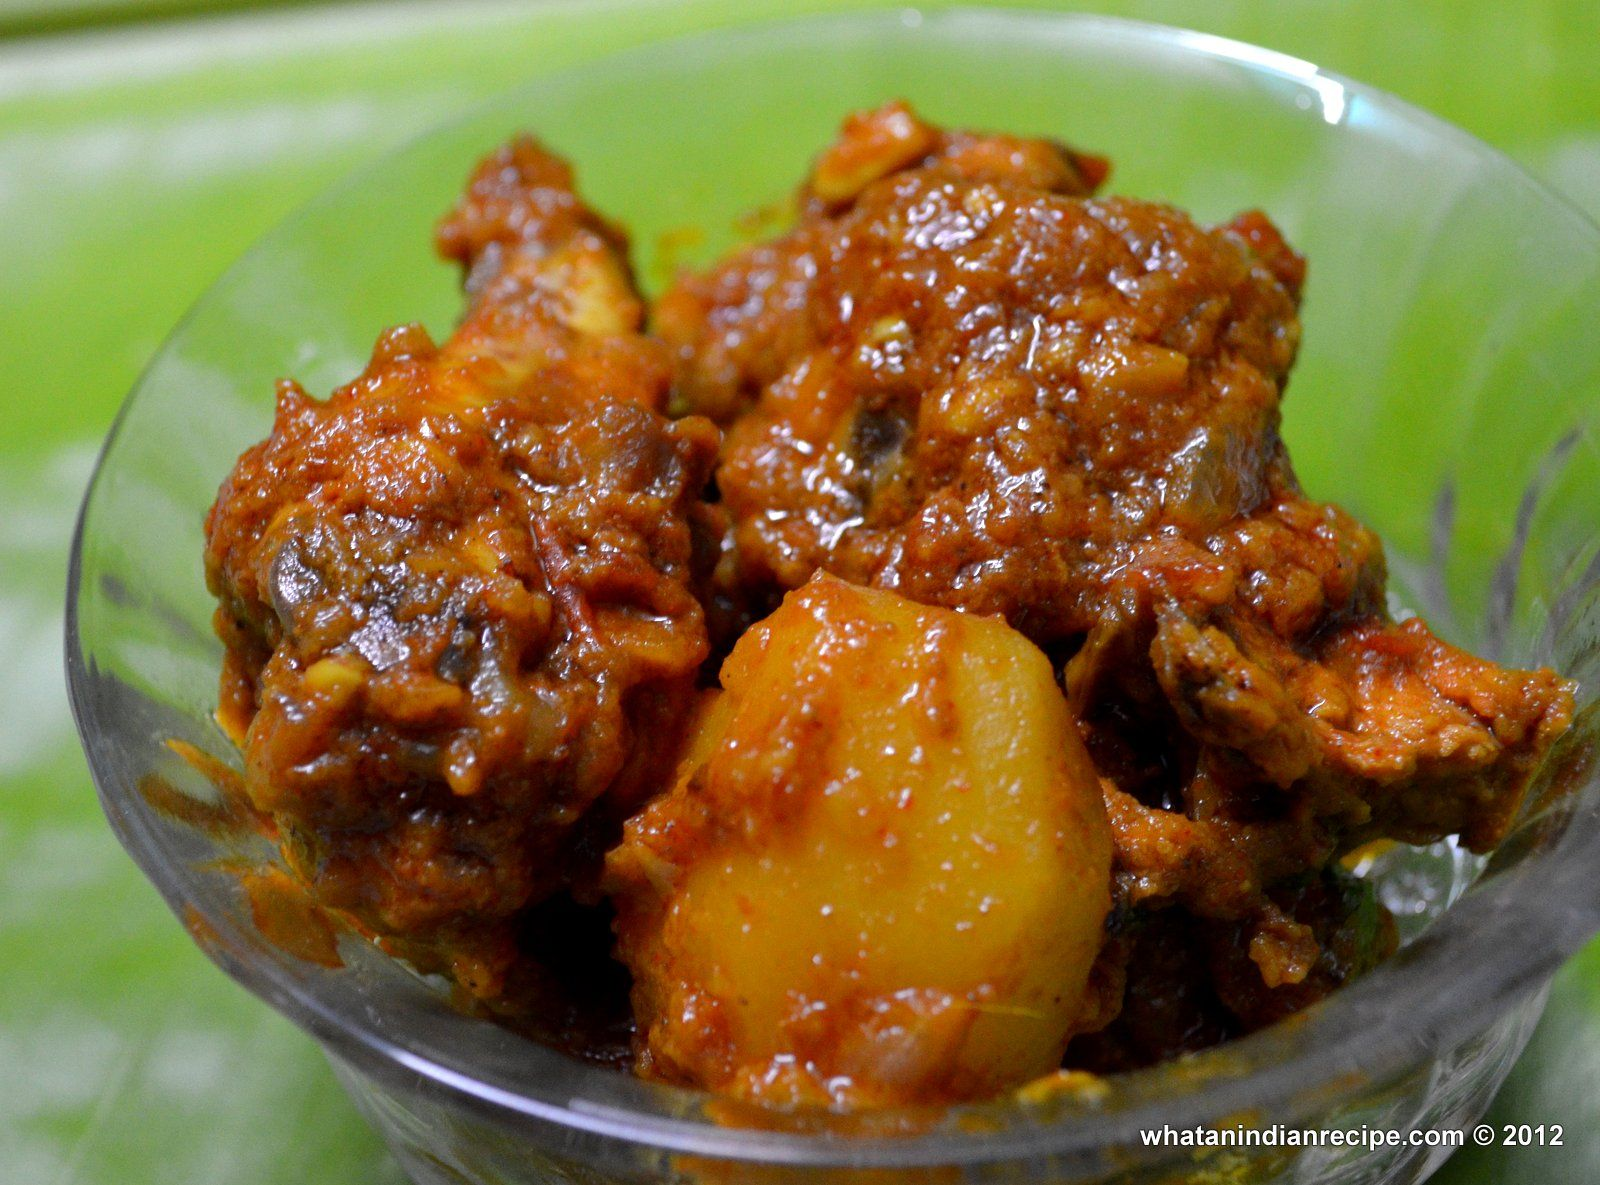 Chicken kasha recipe bengali food bengali food recipes bangla chicken kasha recipe bengali food forumfinder Image collections